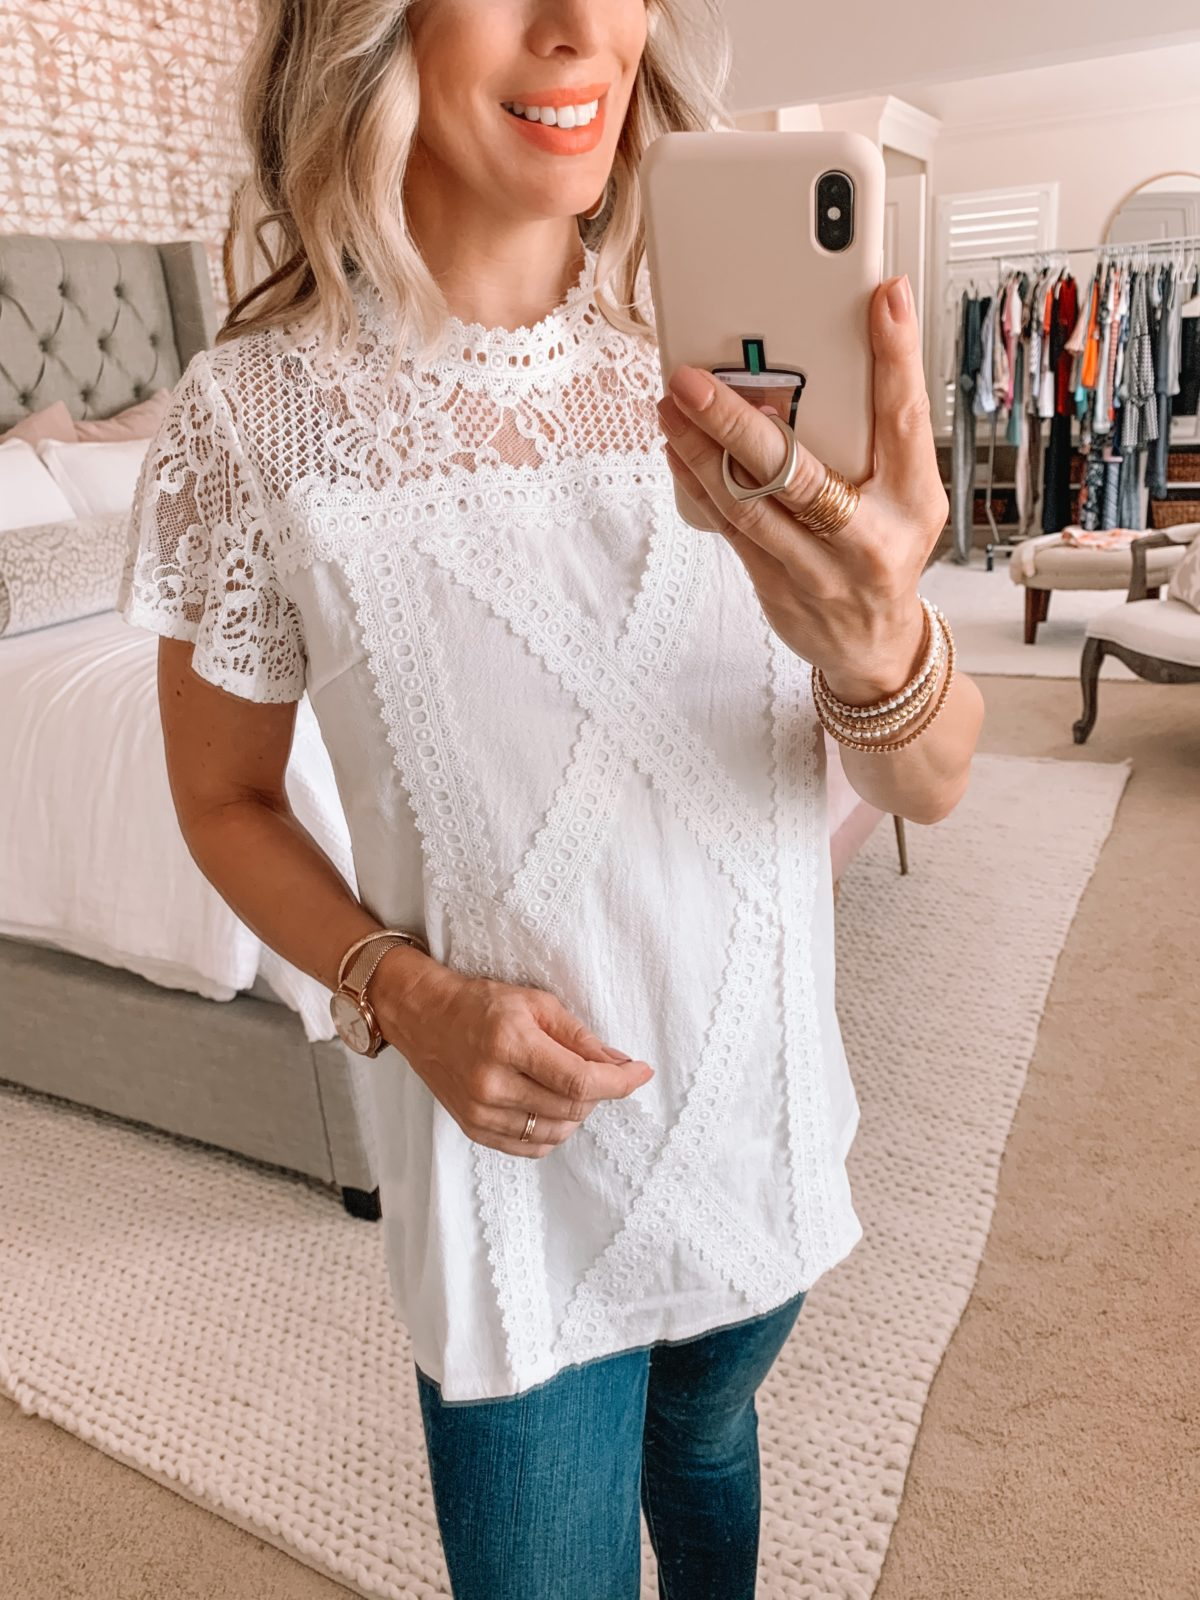 Amazon Fashion Finds, Lace Top, Skinny Jeans